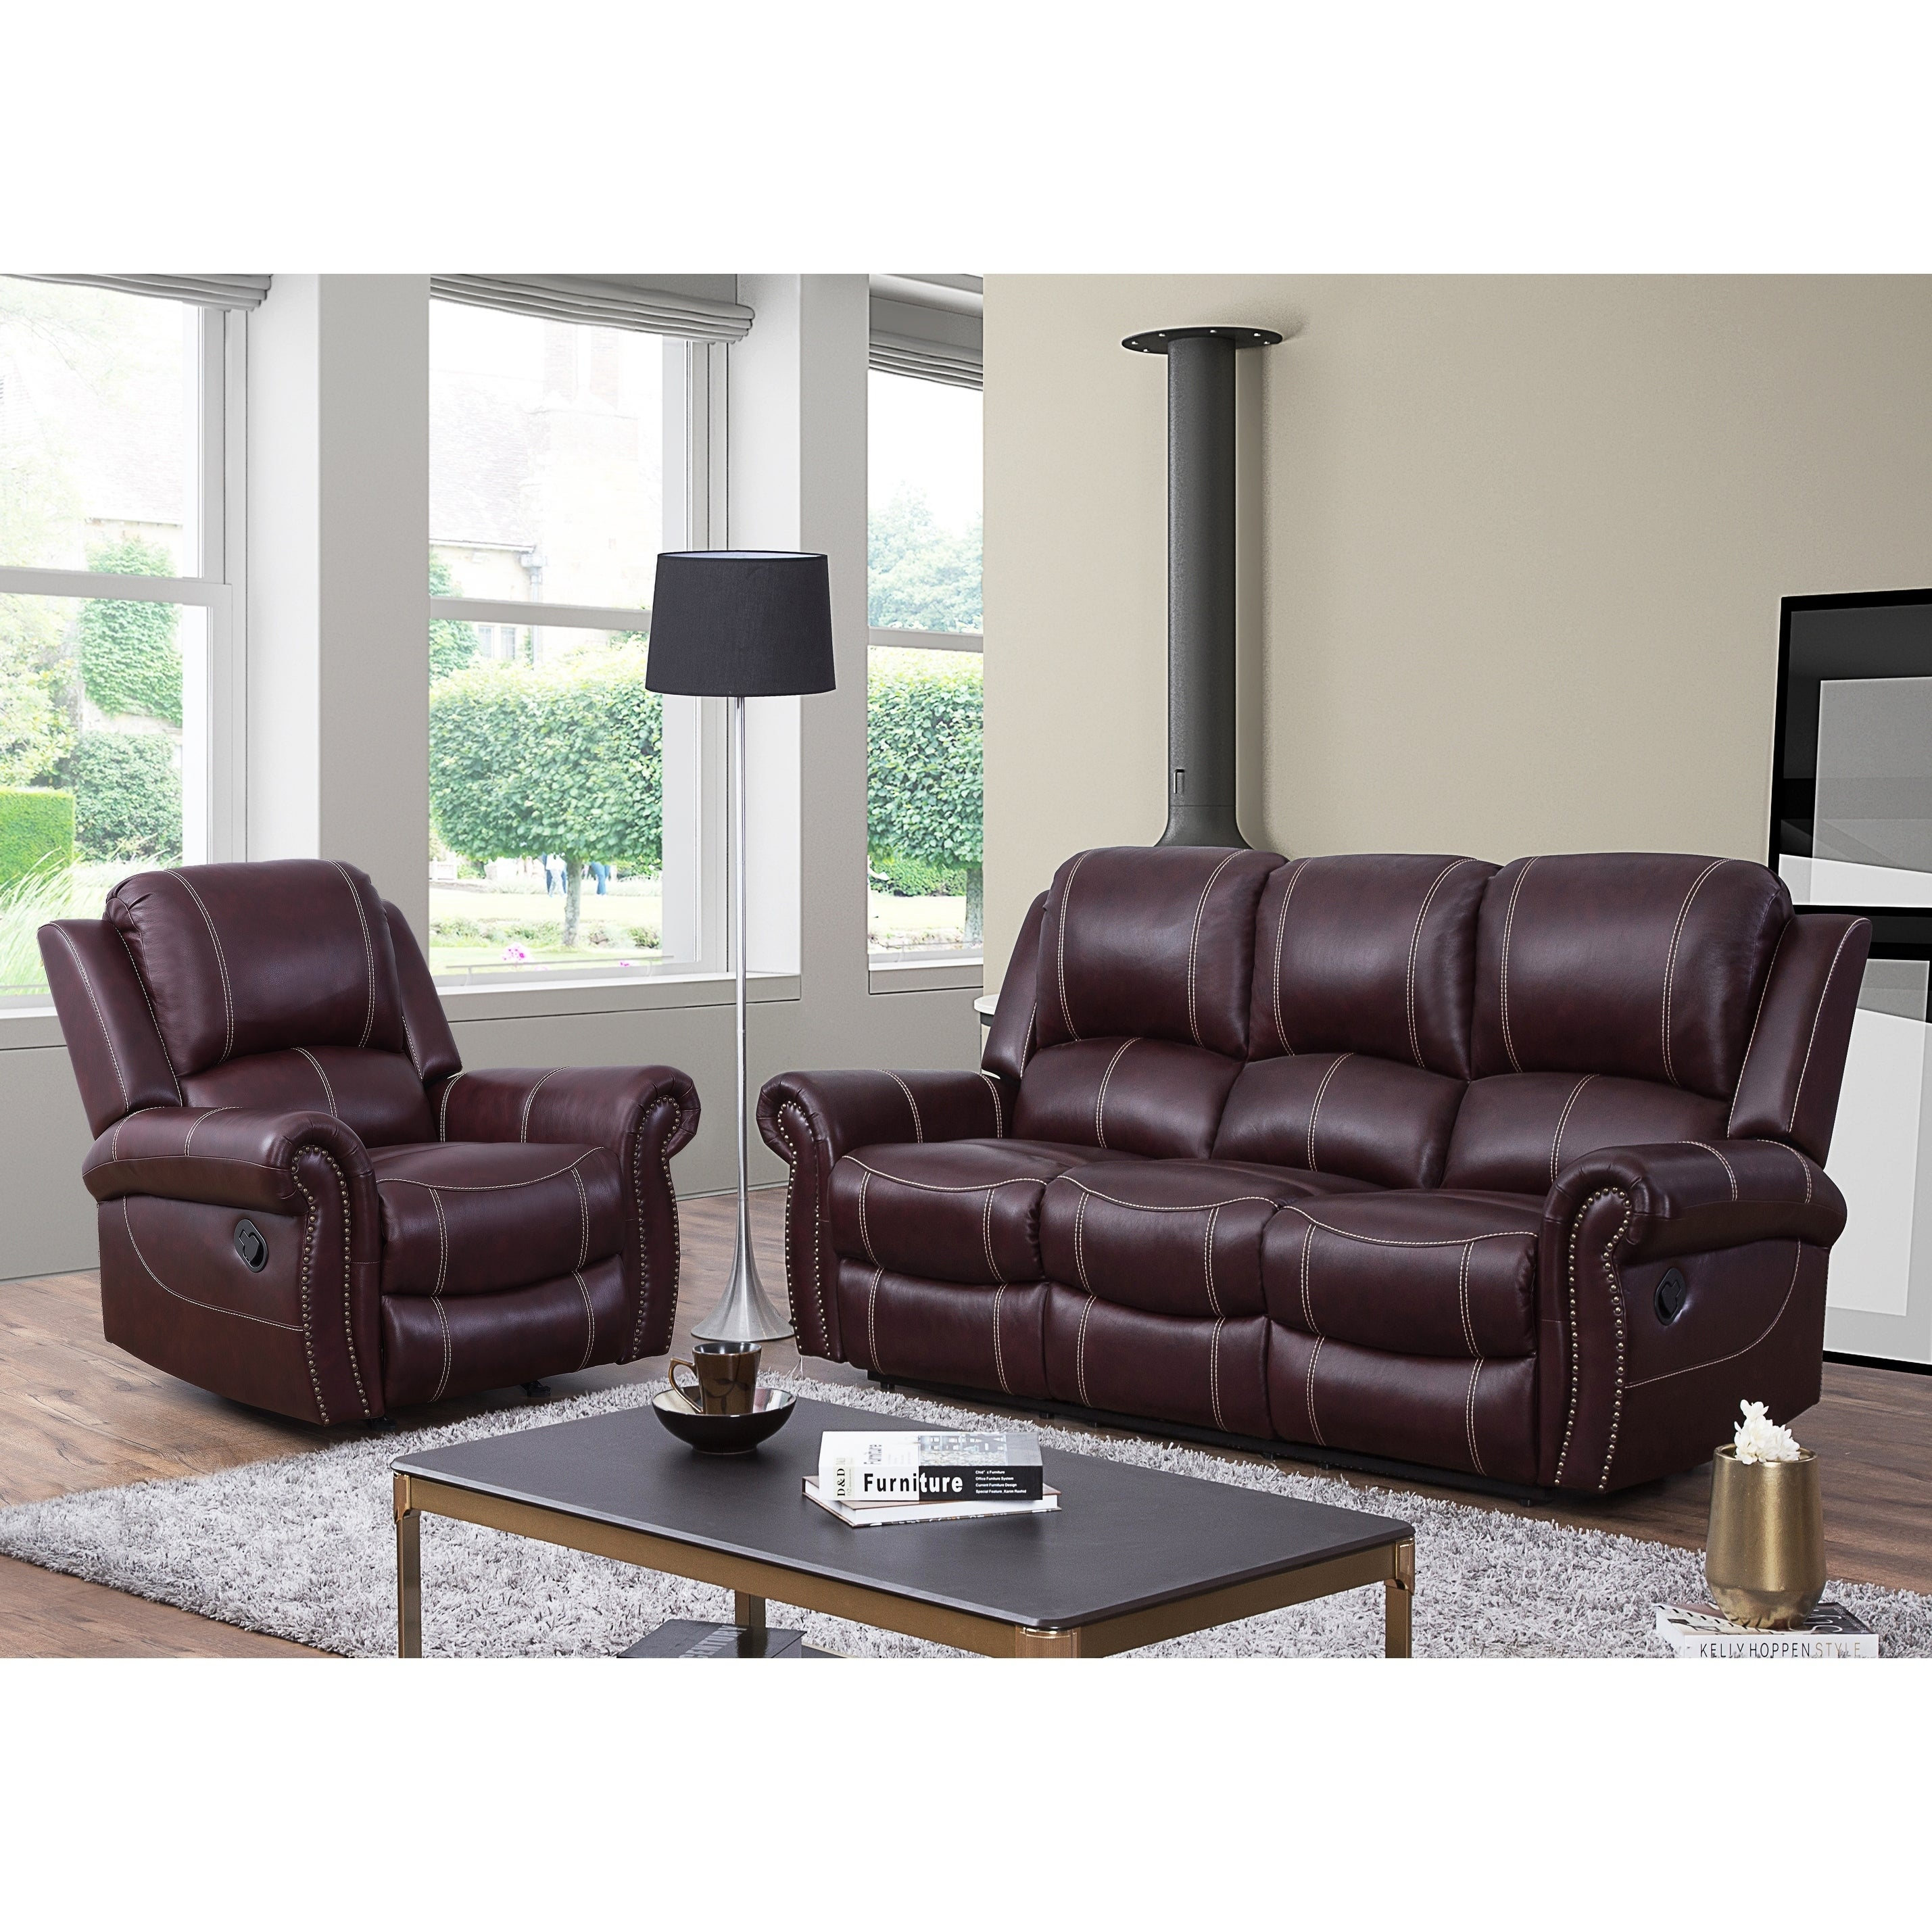 Abbyson Winston Burgundy Top Grain Leather Reclining 2 Piece Living Room Set